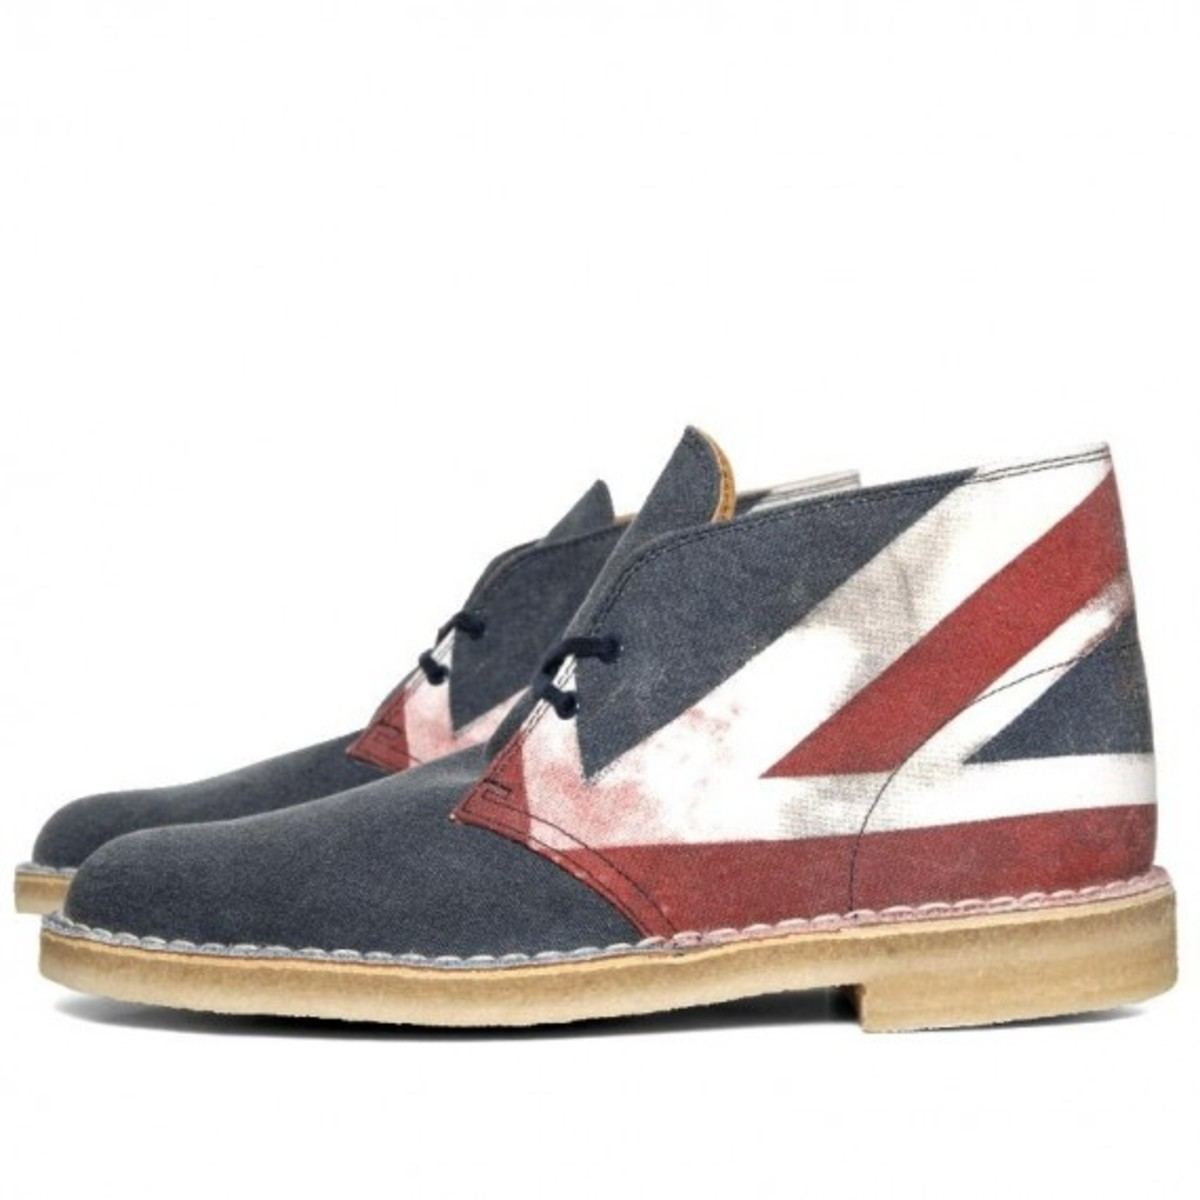 clarks-originals-desert-boot-punk-edition-02